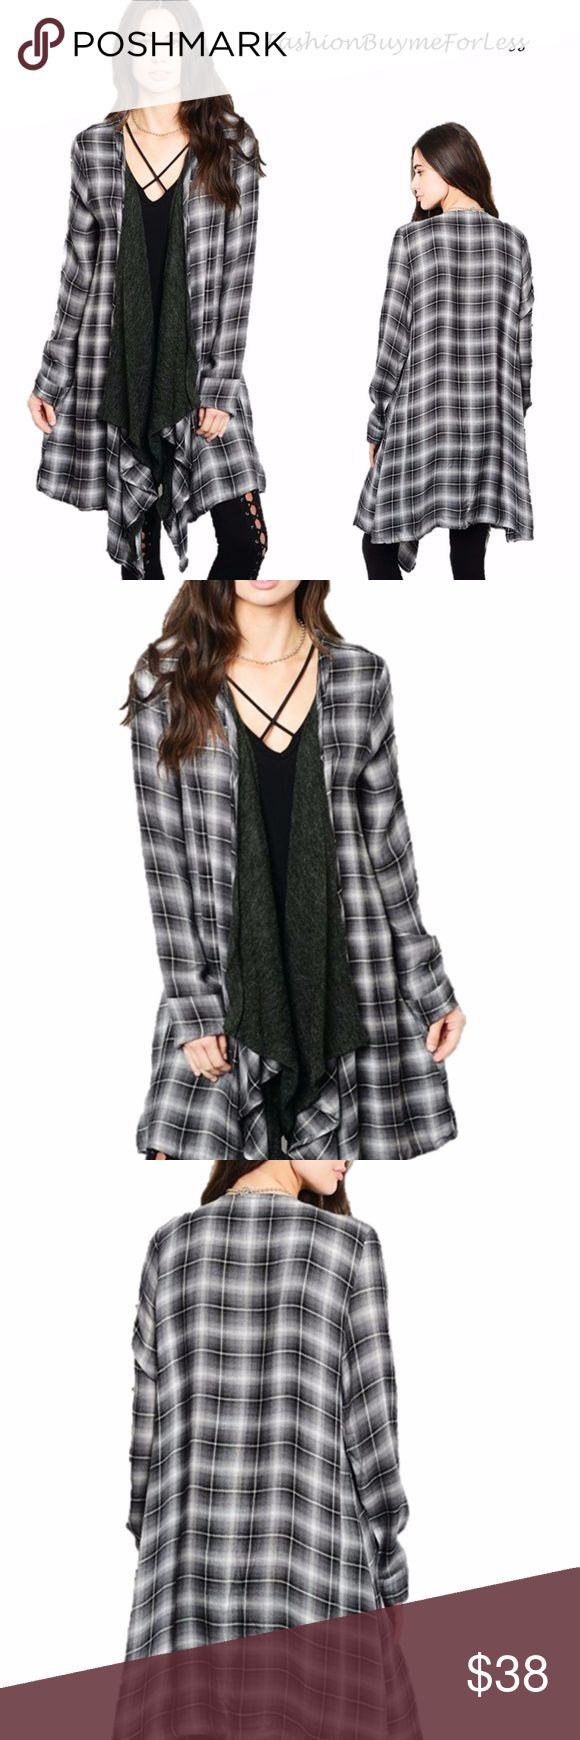 Drape Open Front Plaid Sweater Duster Cardigan Top We love the traditional Check & Plaid Duster Cardigan Jacket, Draped-open front, Beautiful cascade Collar, Long Sleeve, Full Length, Relaxed Fit, Wide Flared hem, Comfortable, quality made. SO COOL... So Contemporary and Stylish for everyday modern... Product ID: 1351 Buyme4Less Sweaters Cardigans